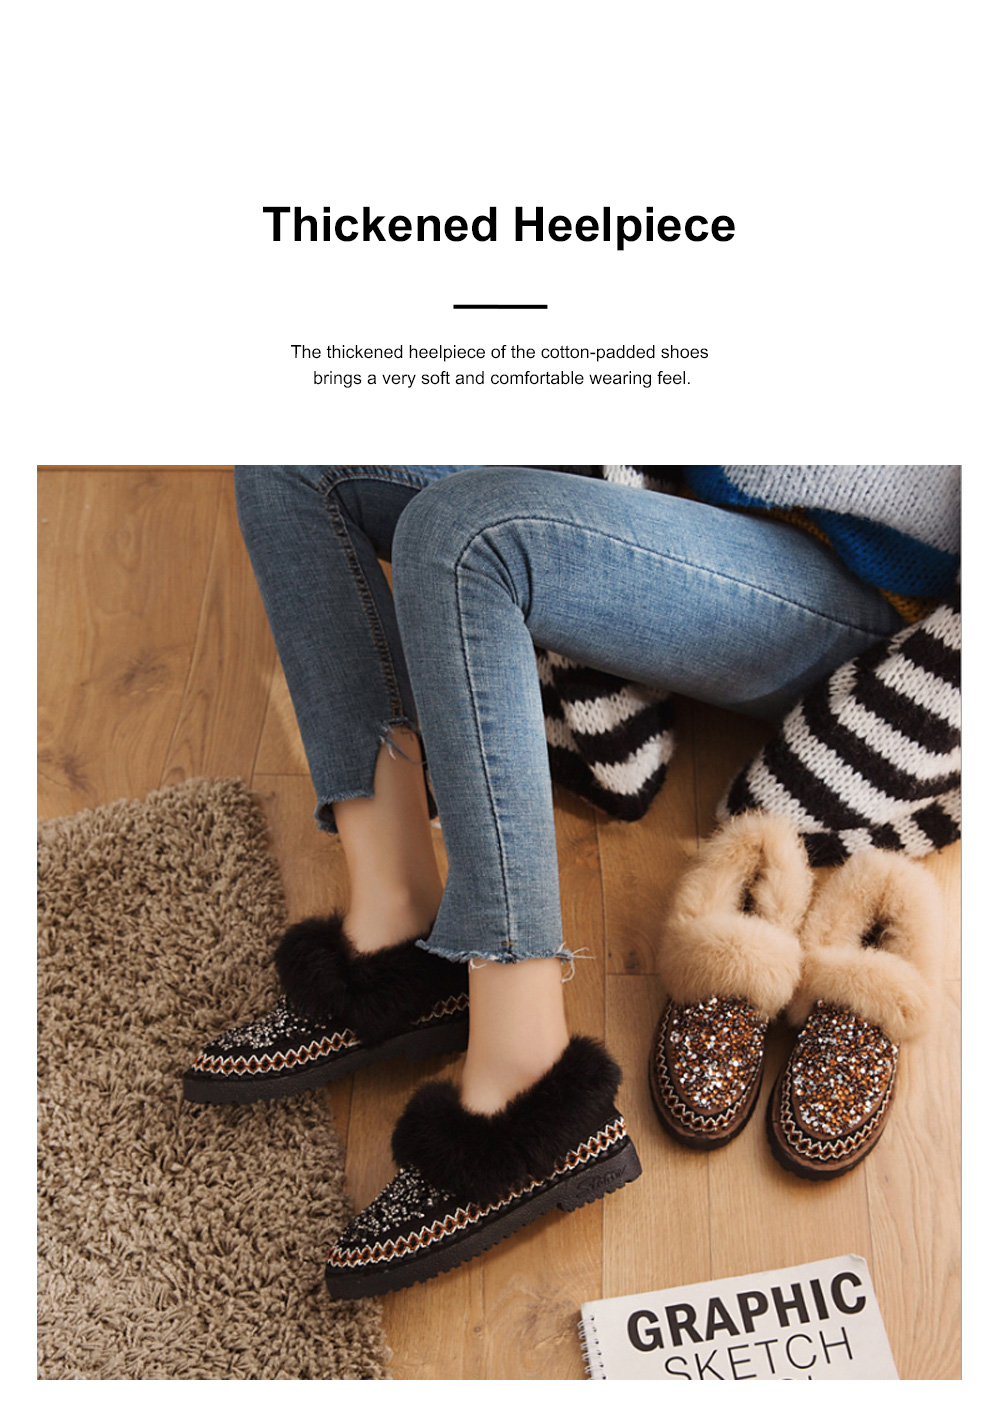 Thermal Cotton-padded Shoes for Women Winter Wear Paillette Flat-heeled PU Fur Shoes Thickened and Brushed Snow Boot 3